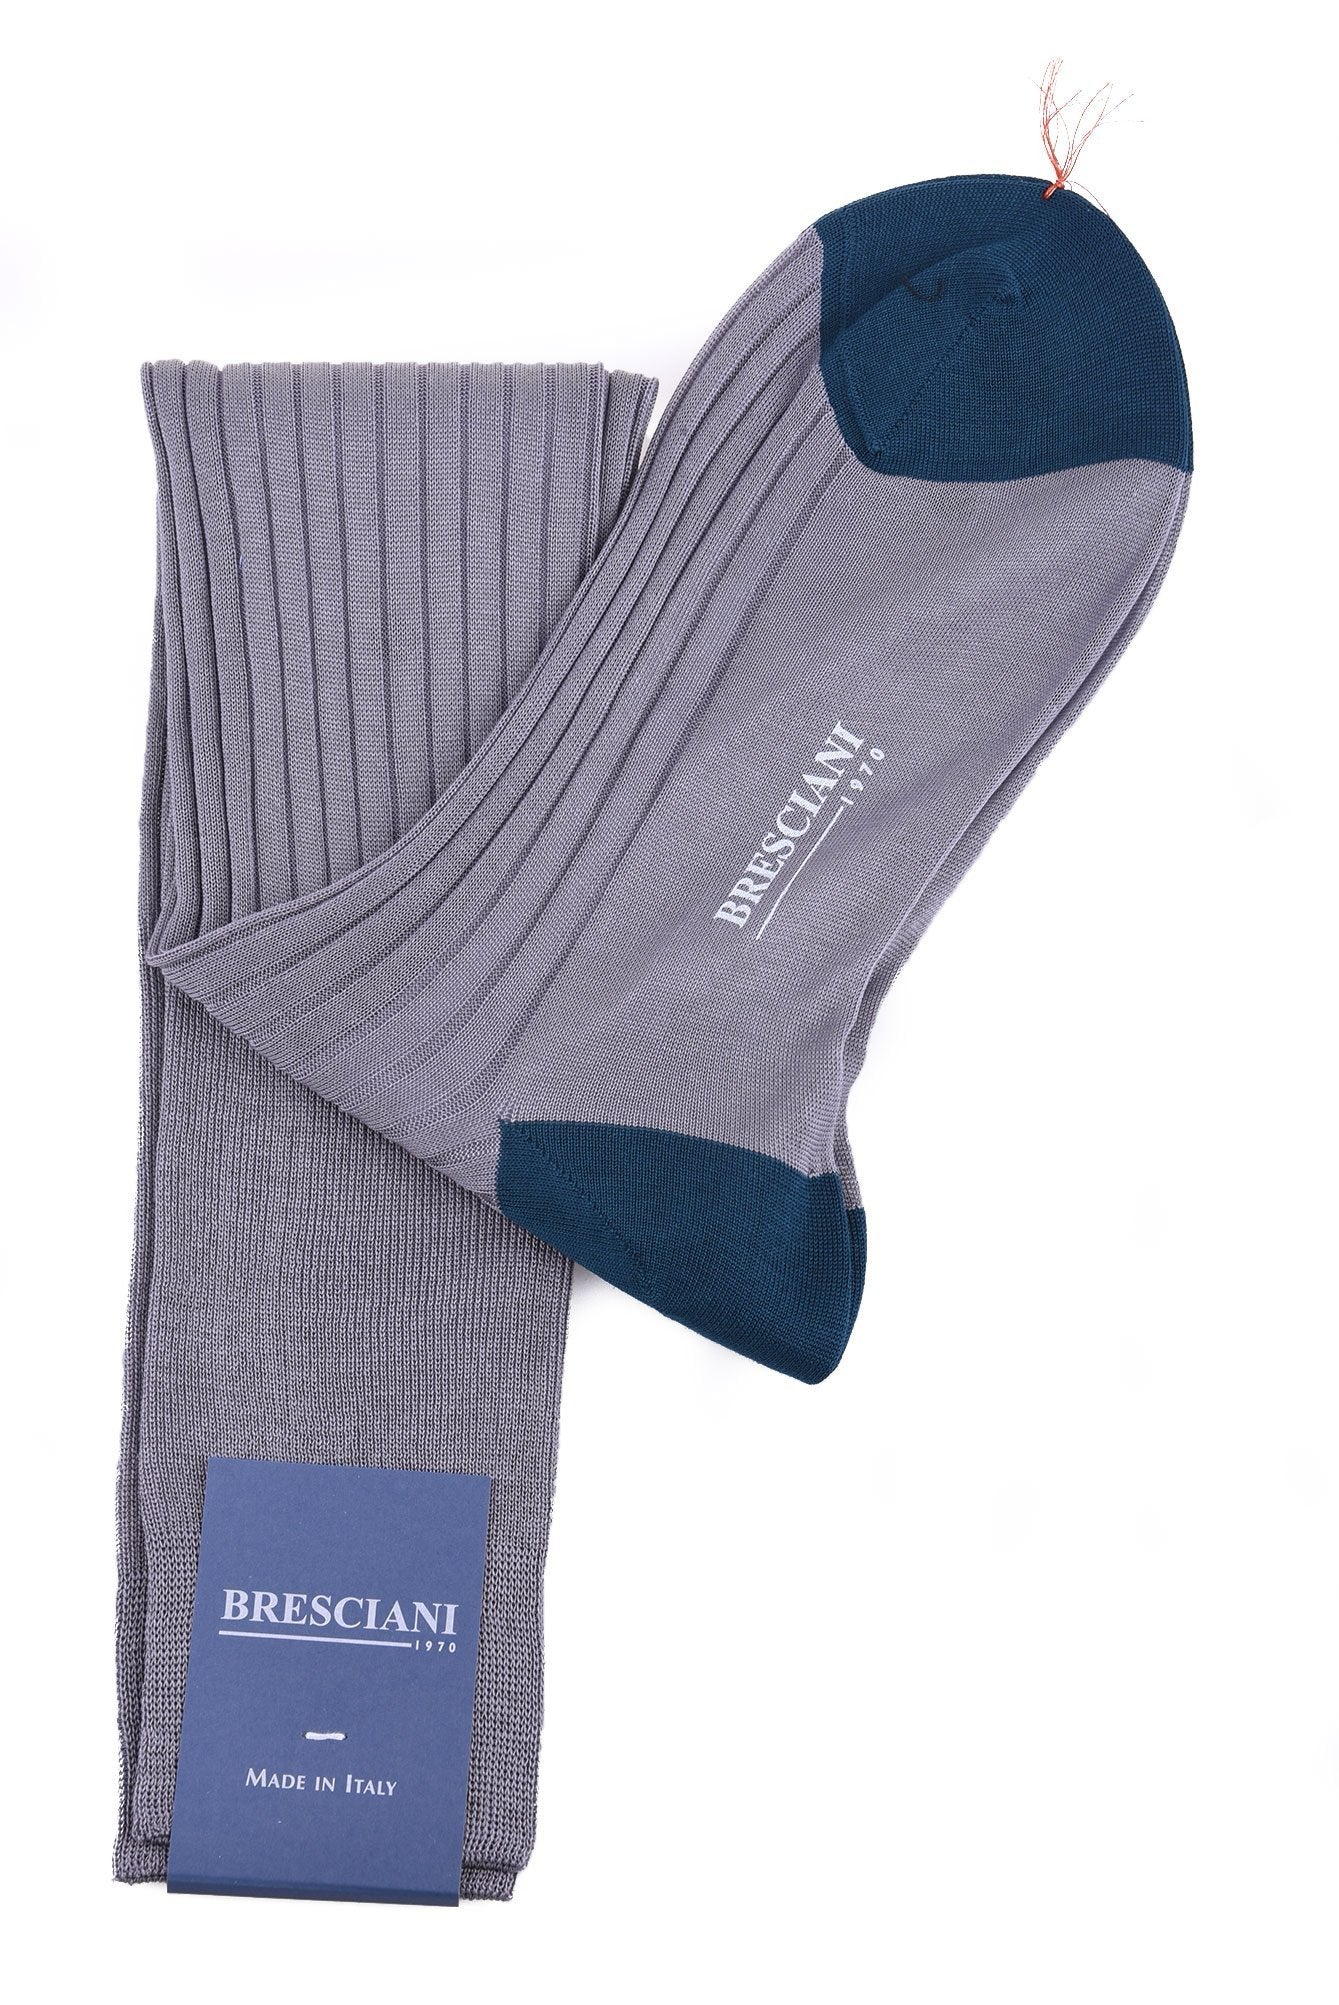 Bresciani Two-Tone Cotton Knee Length Socks